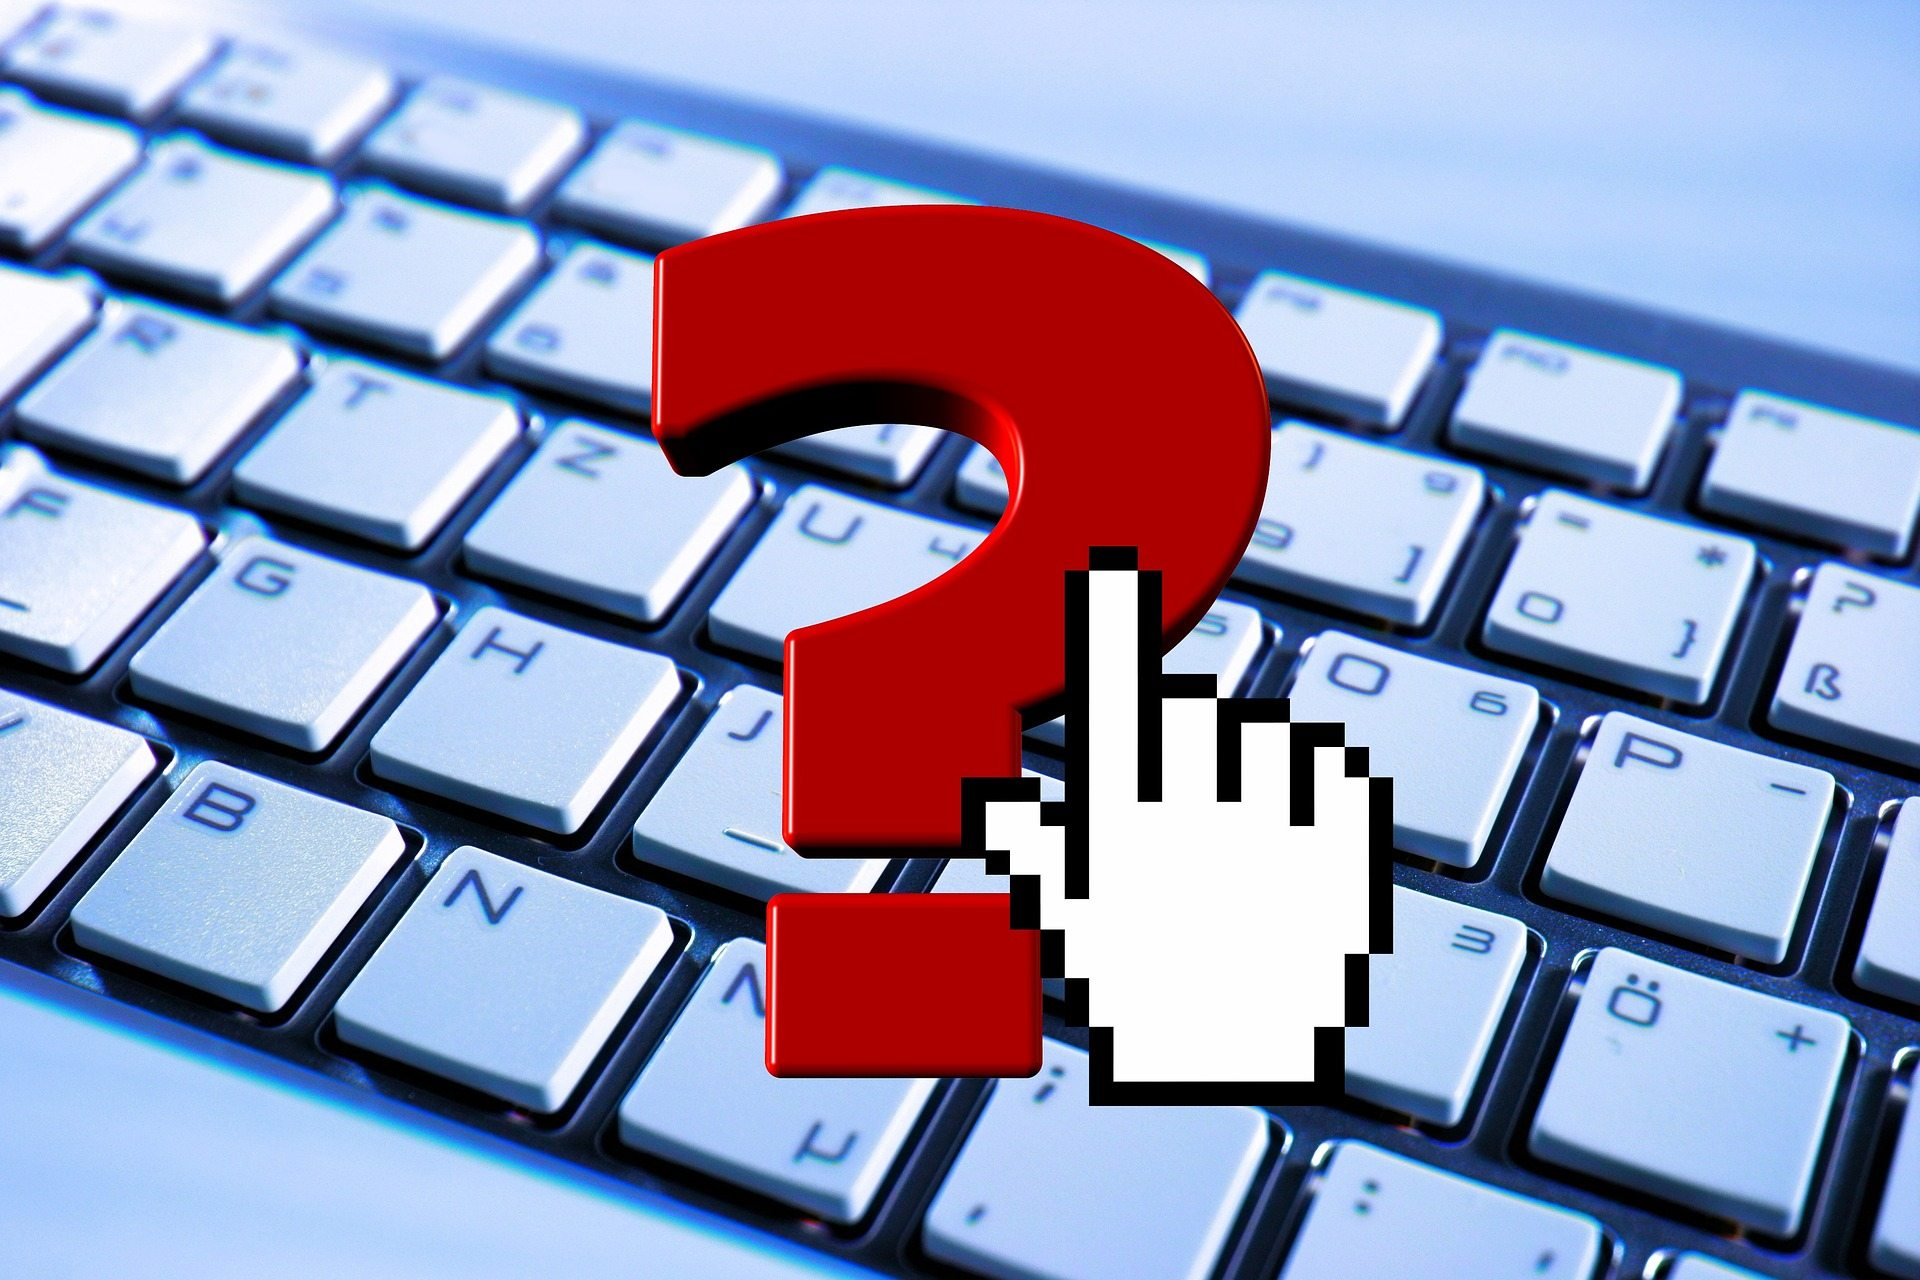 Questions guidelines purity Pixabay keyboard-824317_1920